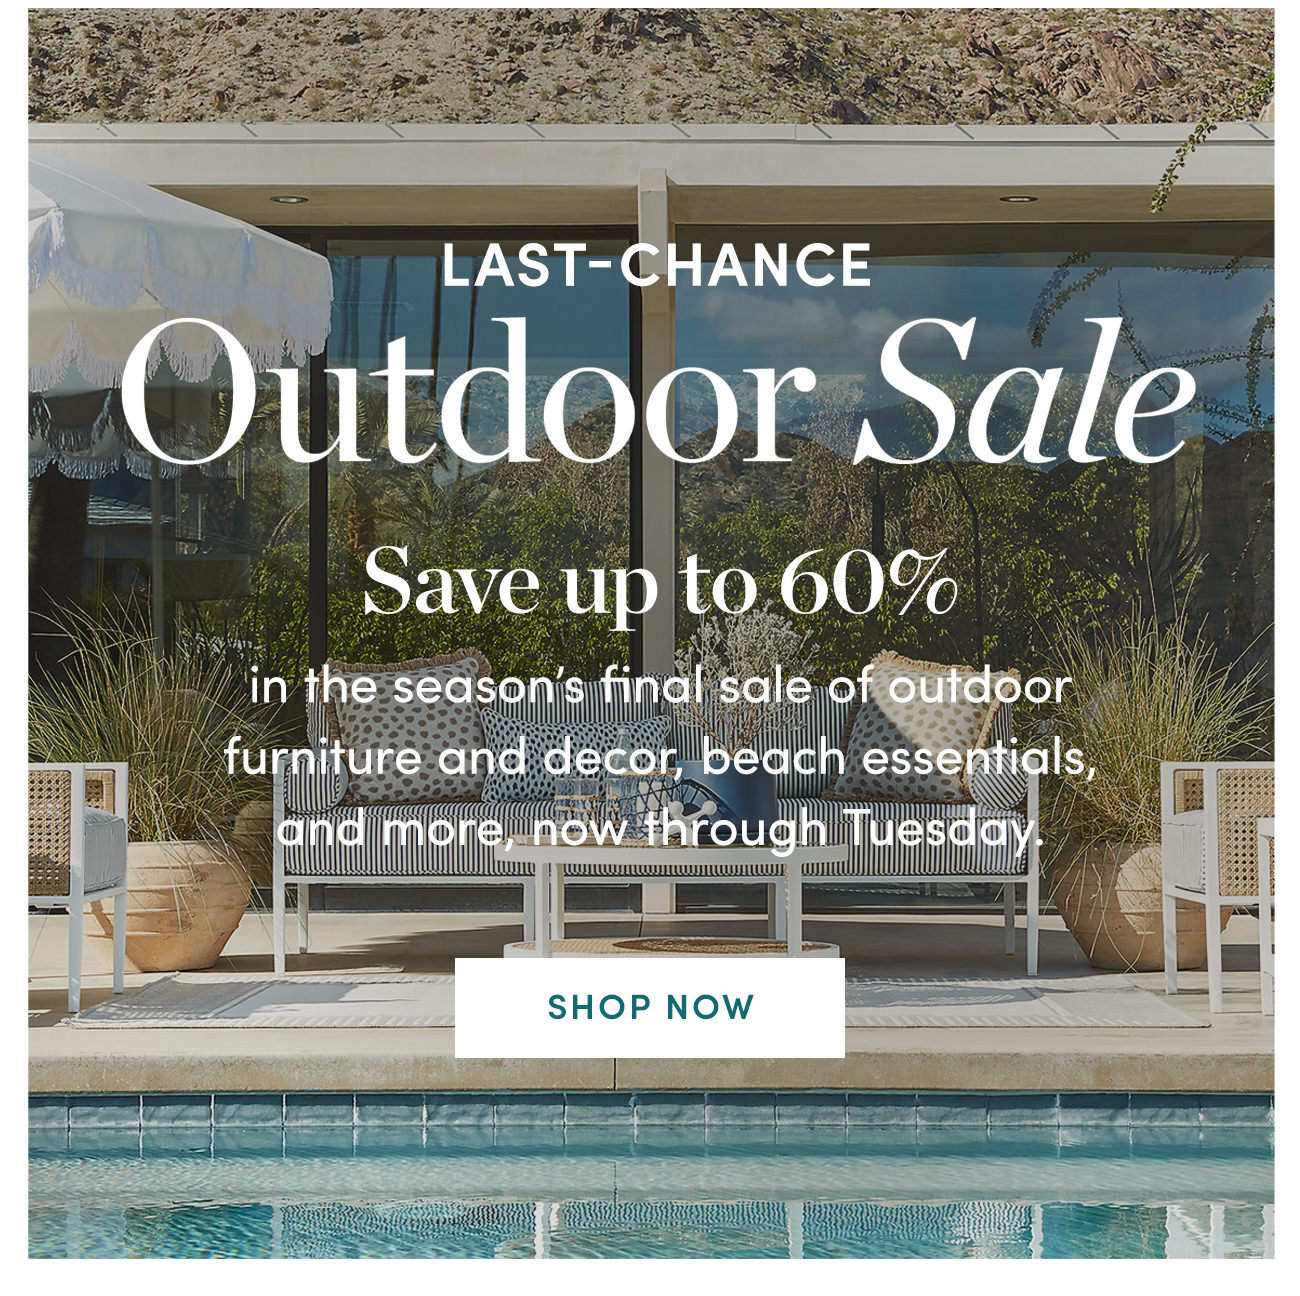 Last-Chance Outdoor Sale | Save up to 60% | SHOP NOW >